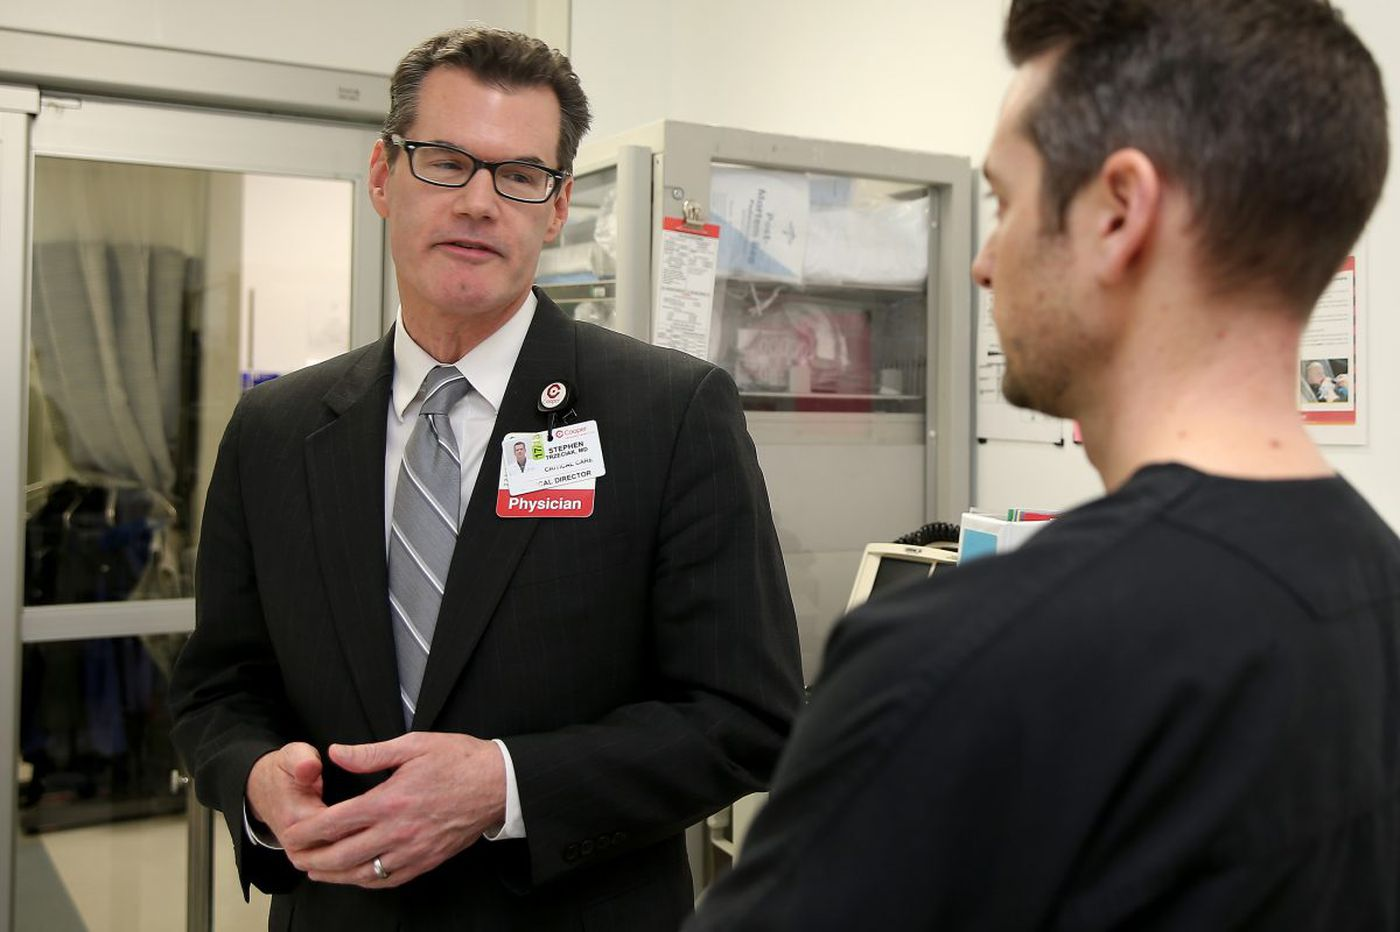 Cooper University Hospital connects compassion and reducing PTSD